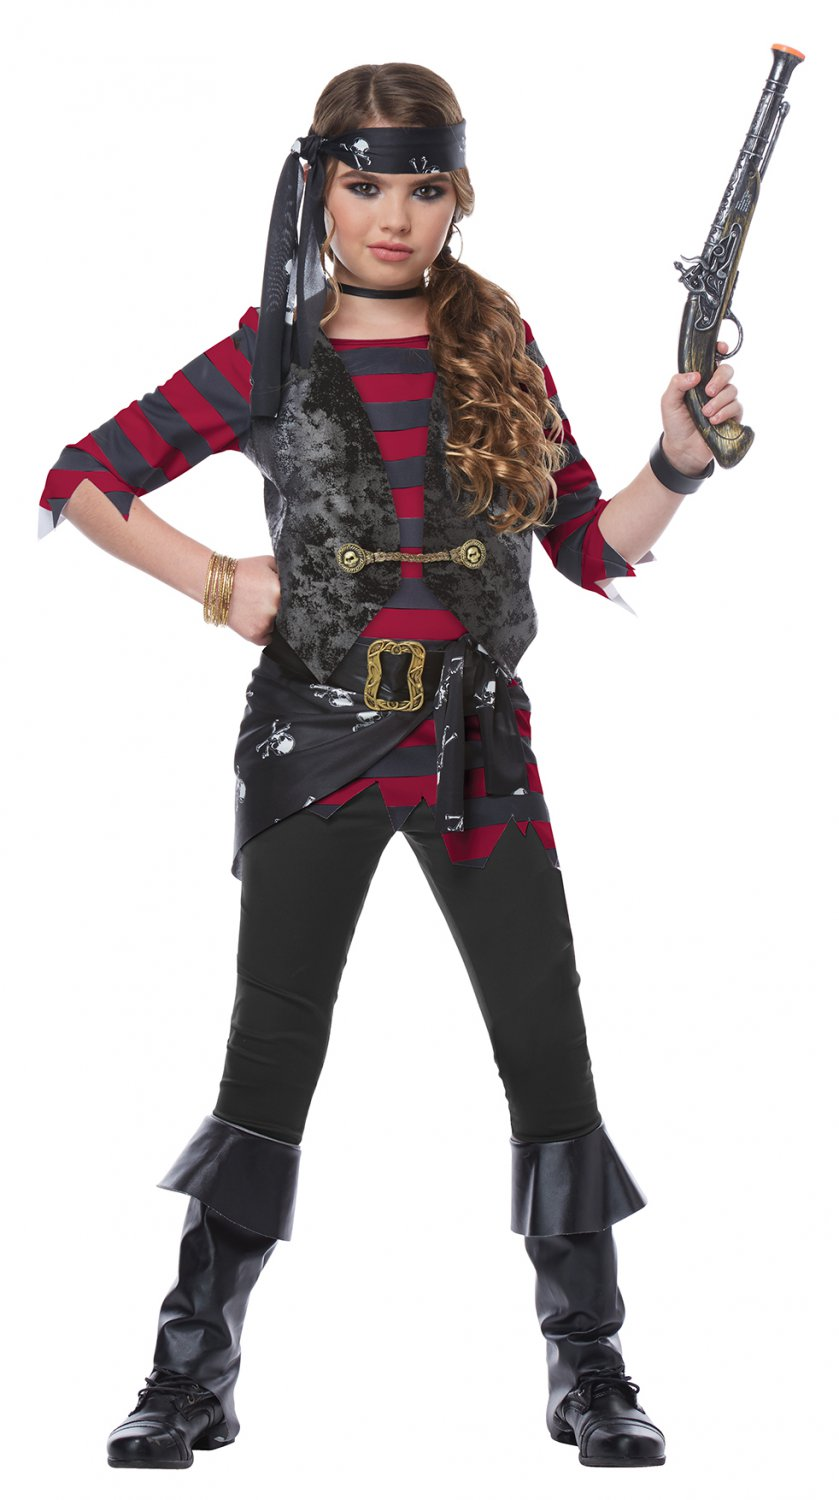 Size: Small #00577 Raider Renegade Pirate Buccaneers Girl Child Costume